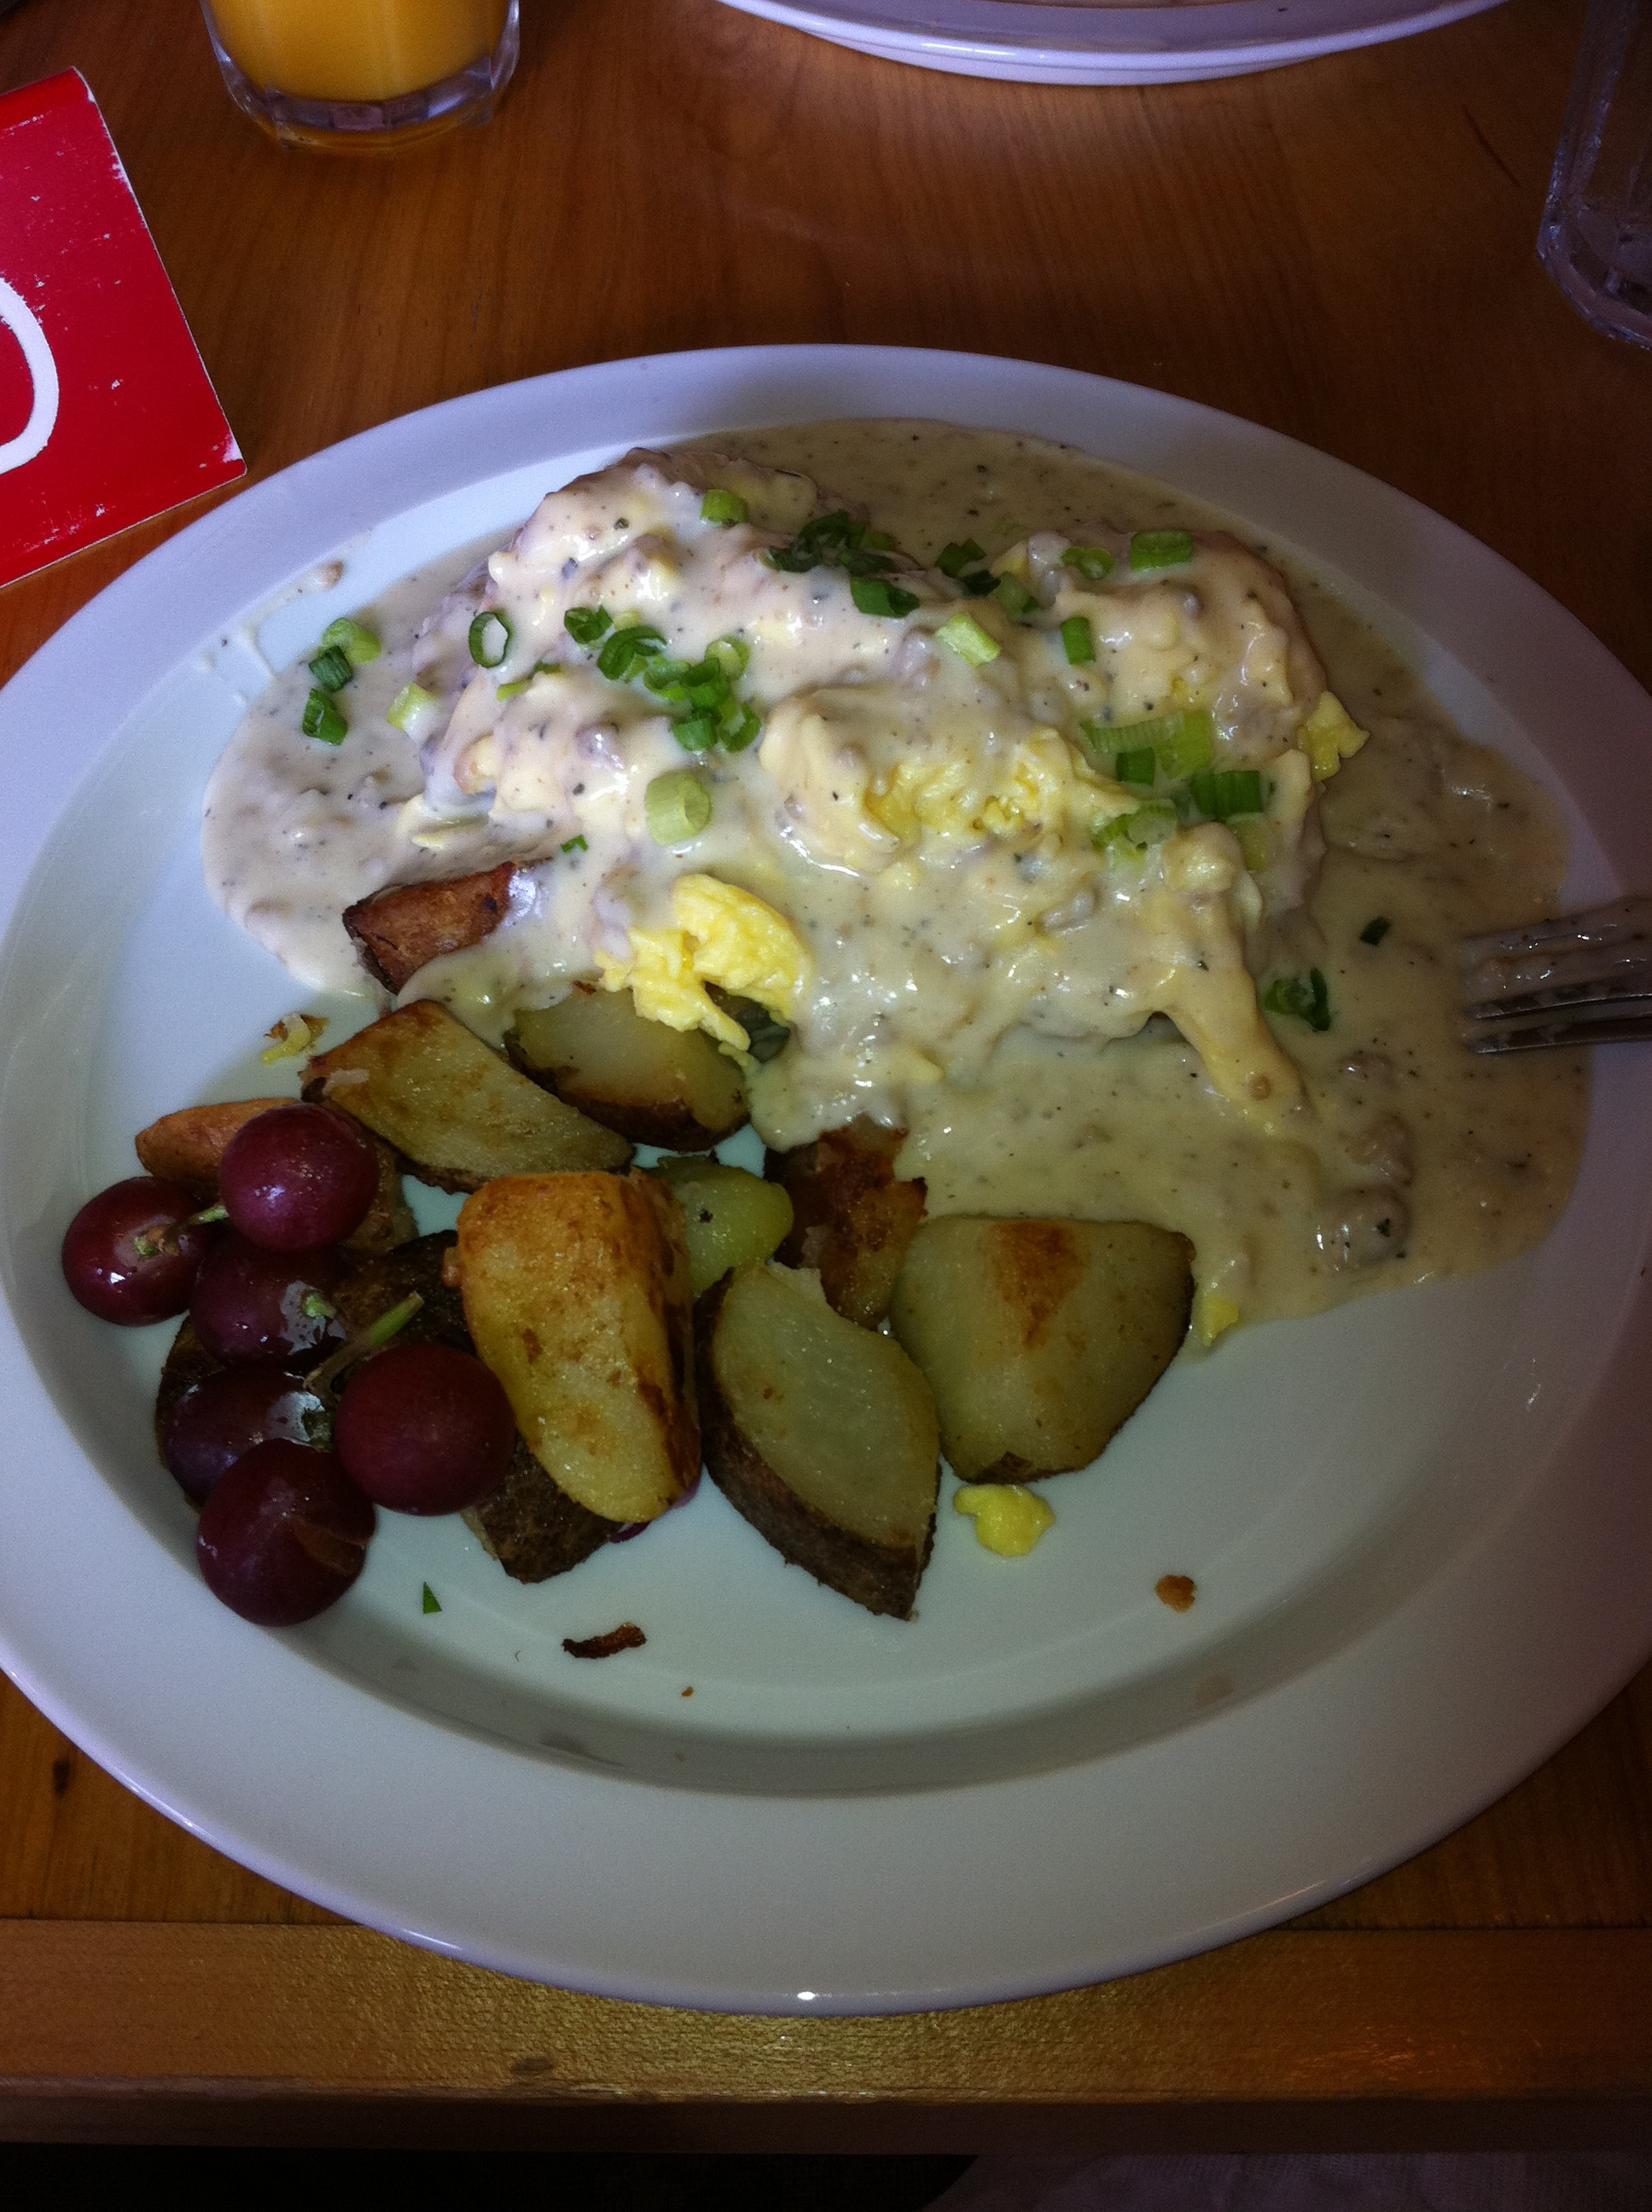 Cheddar biscuits and gravy at Lucky's Cafe